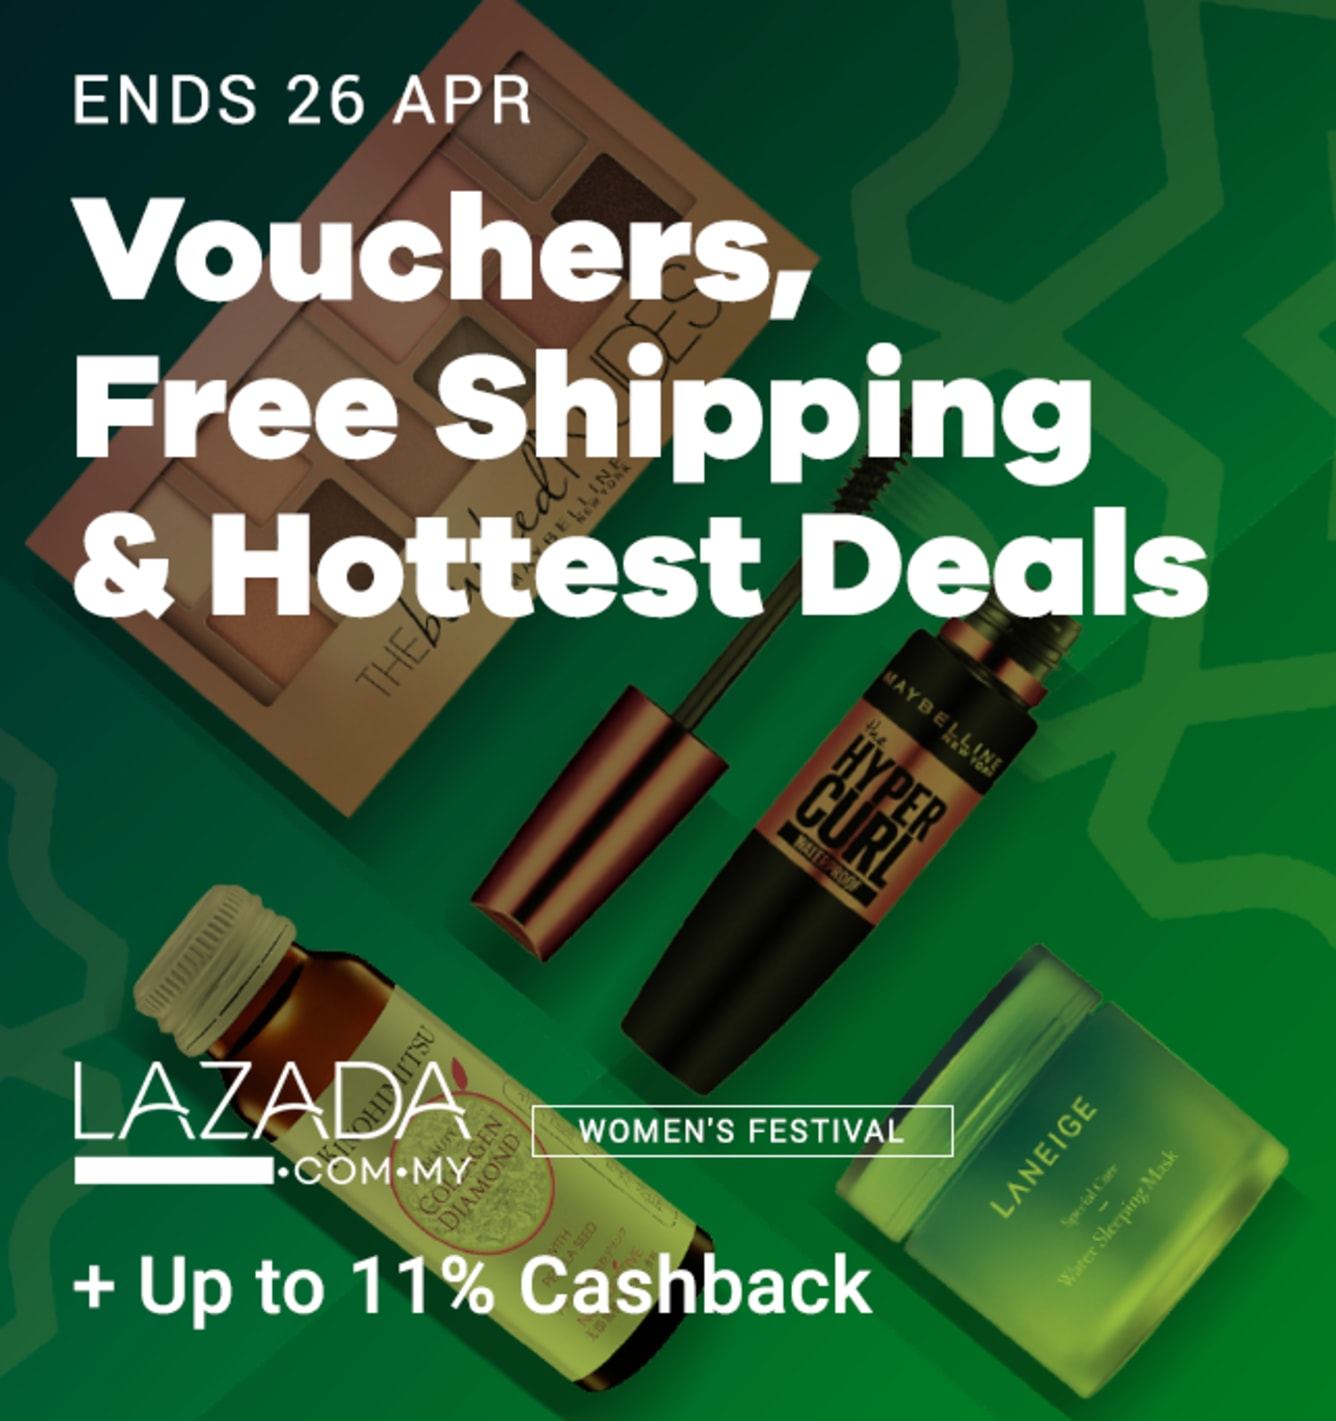 Lazada Women's Festival April 2019